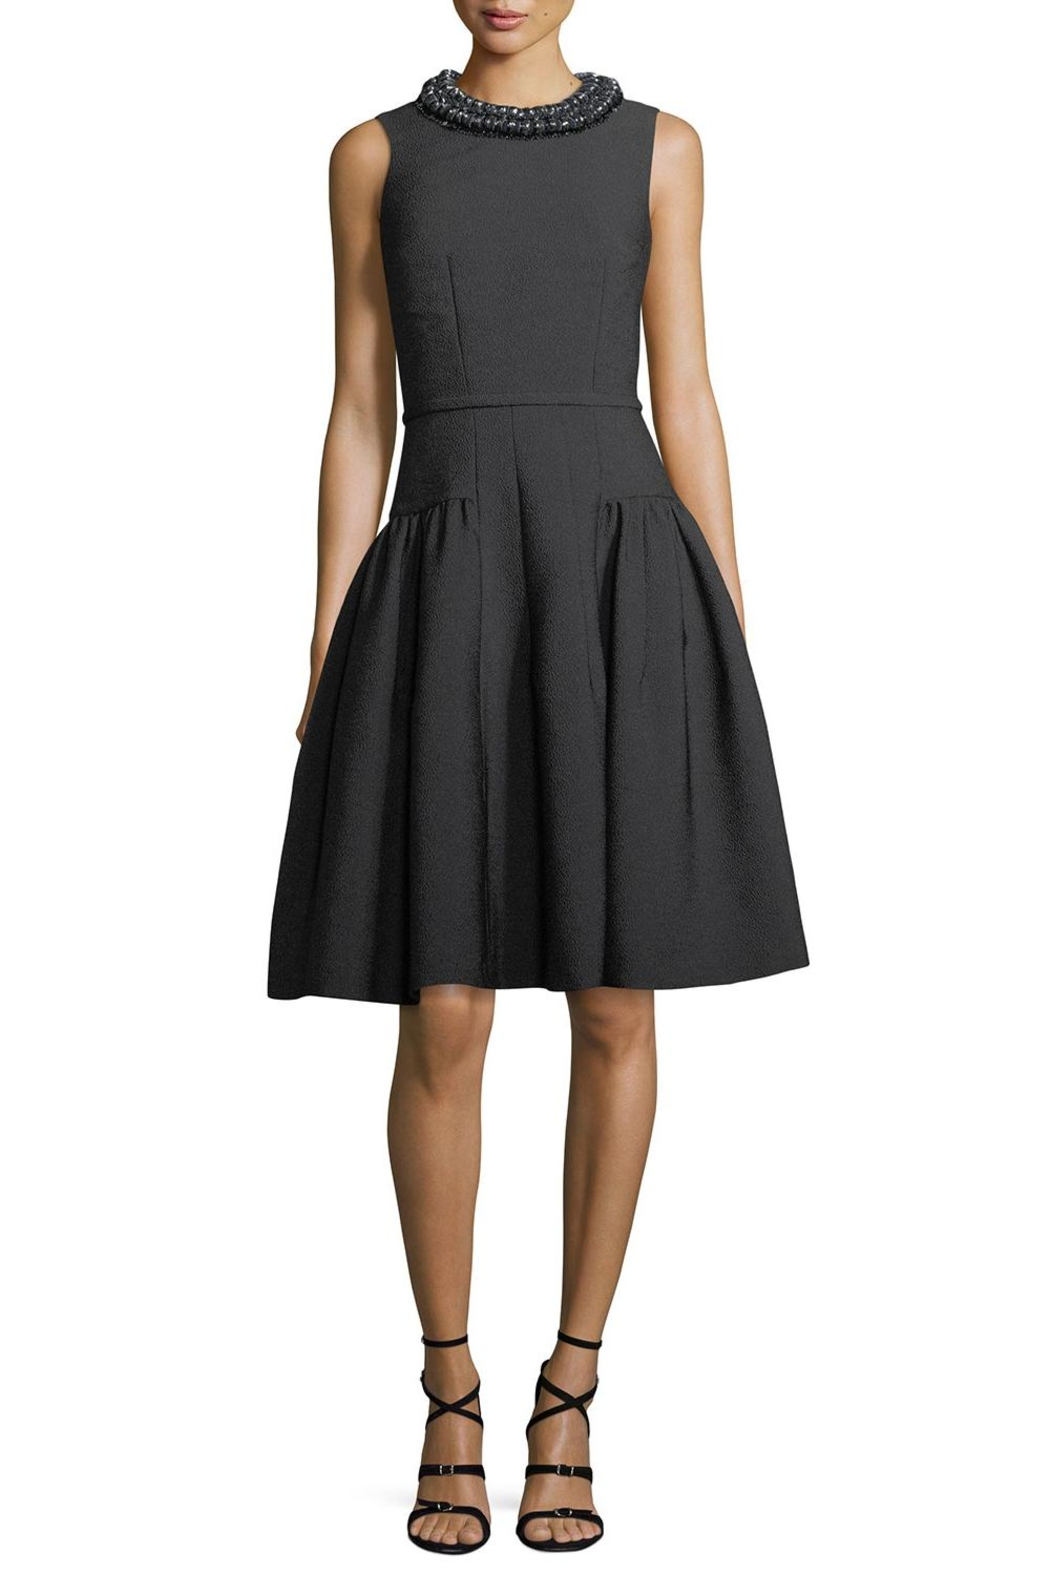 Carmen Marc Valvo Sleeveless Crepe Dress - Main Image